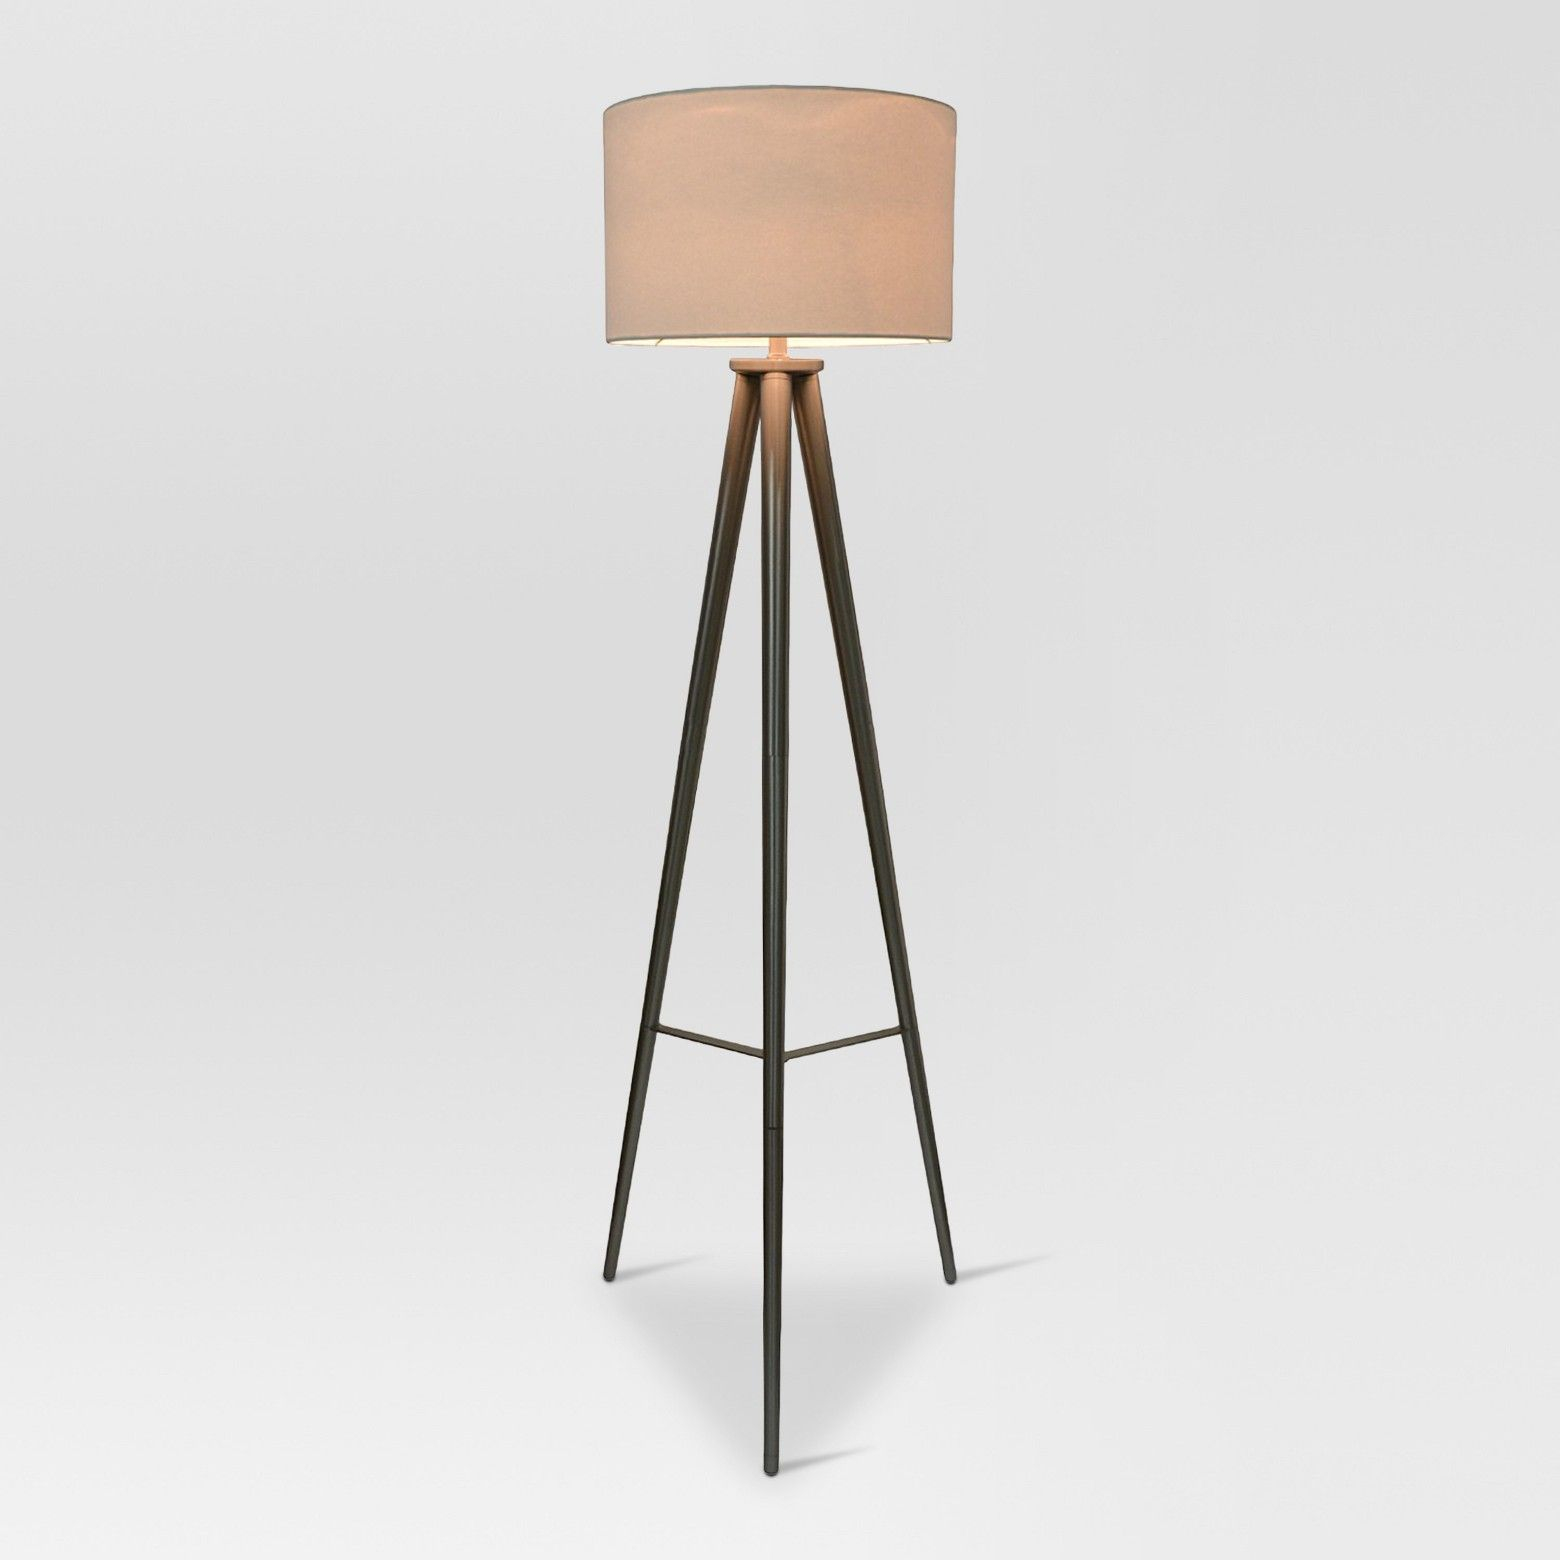 Delavan Metal Tripod Floor Lamp Brass Lamp Only Project 62 pertaining to dimensions 1560 X 1560